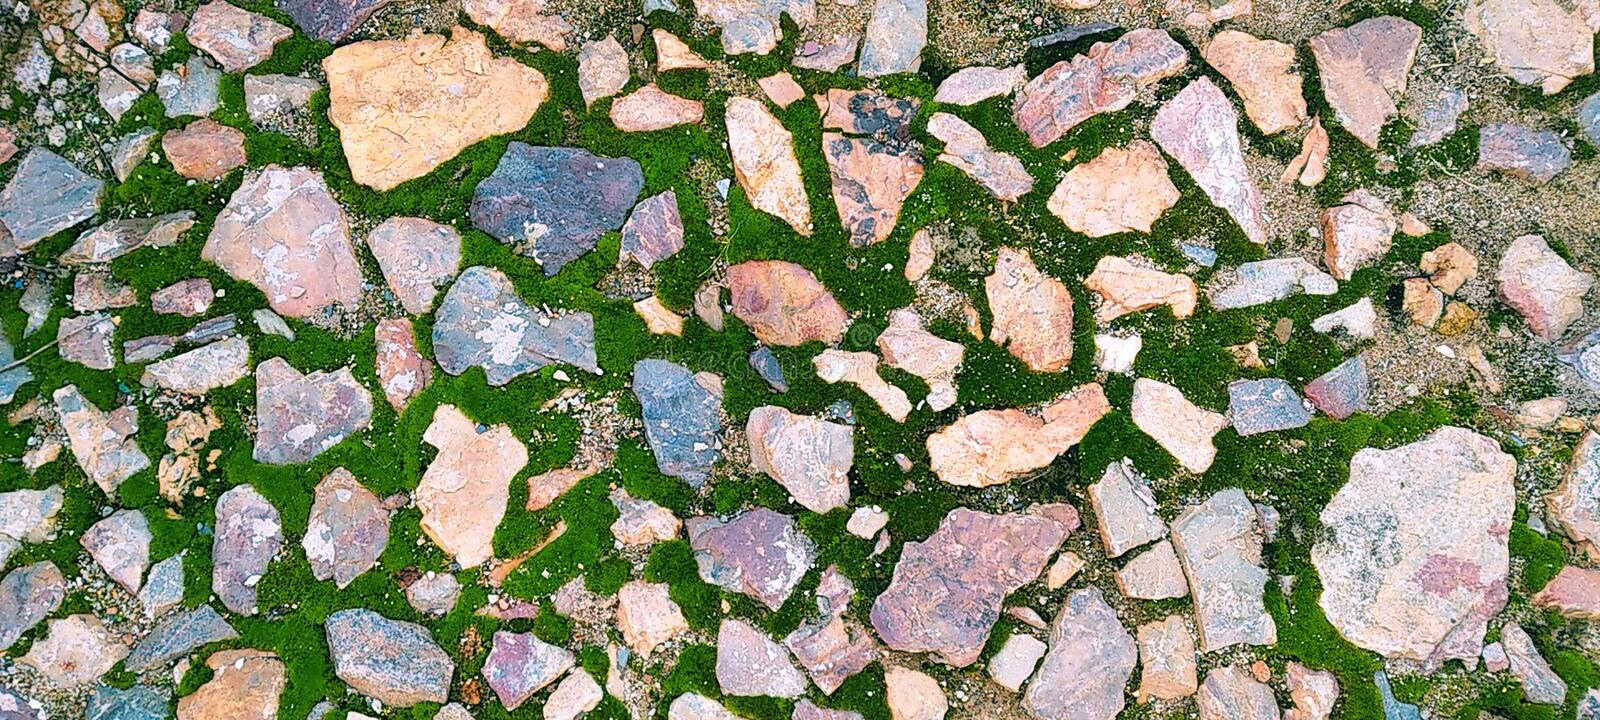 Stones with Green Moss Seamless Texture. Real Moss Texture with stones or Rocks. Musgo Verde royalty free stock photo